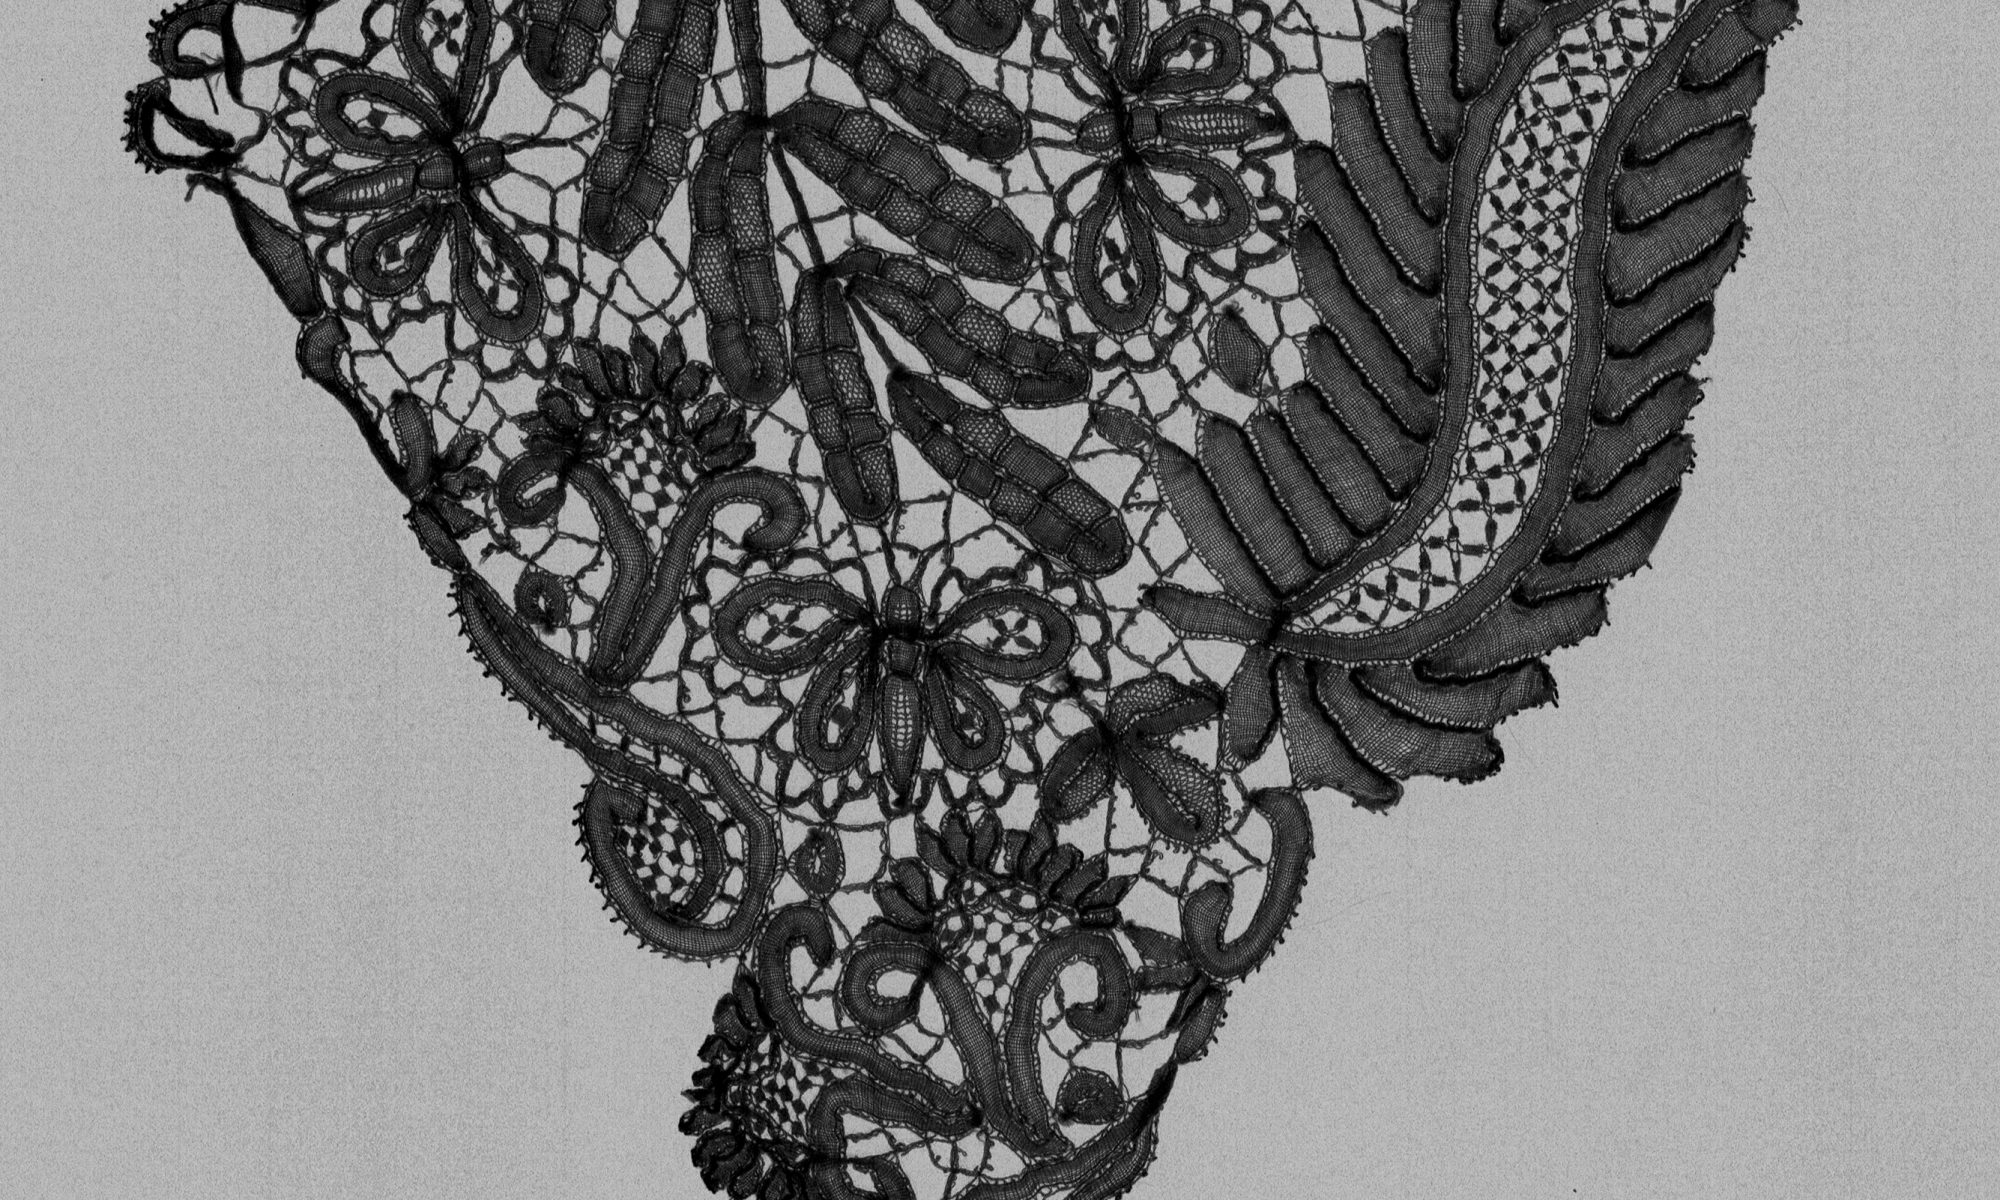 lace design with sprigs and brides